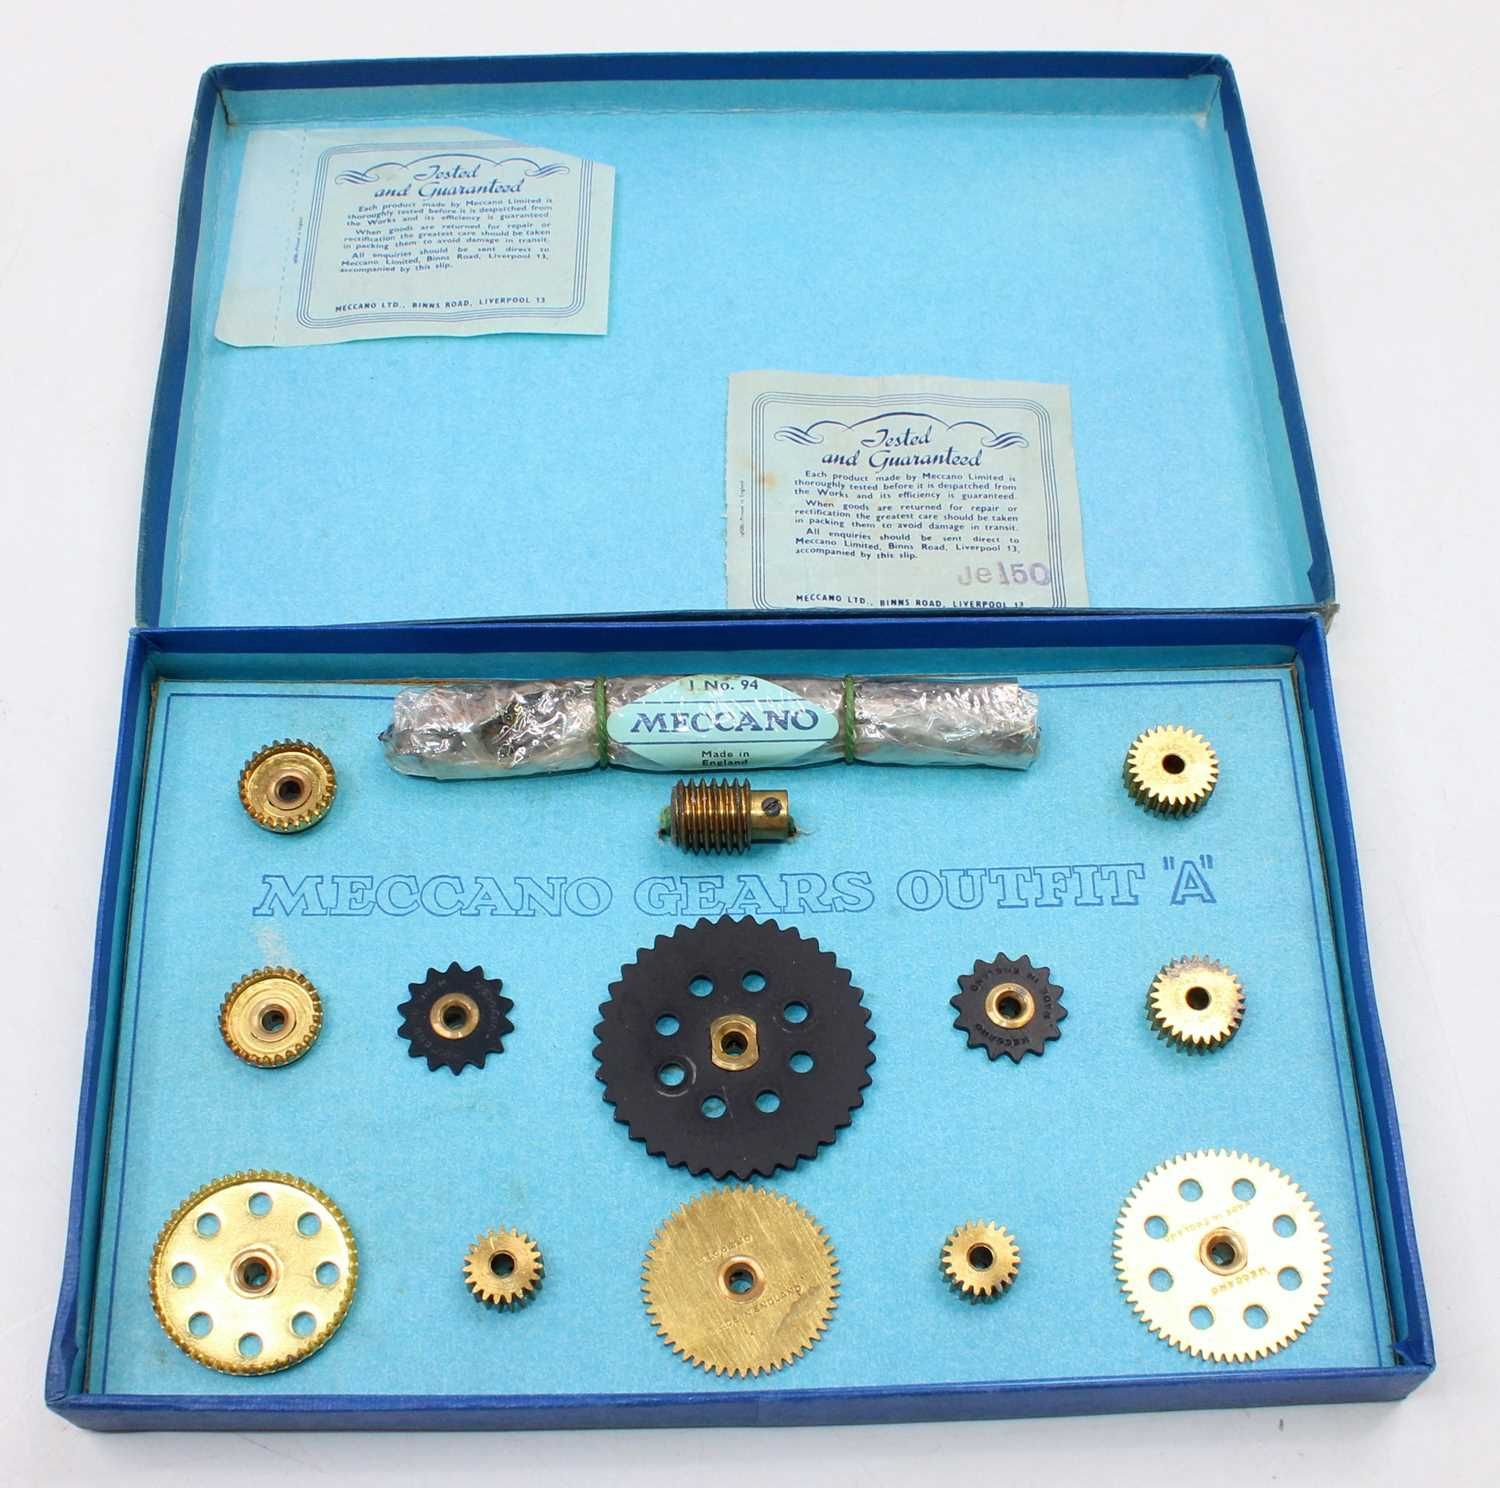 A Meccano 1950s gears outfit A, as new and housed in the original blue ground labelled card box, - Image 2 of 2